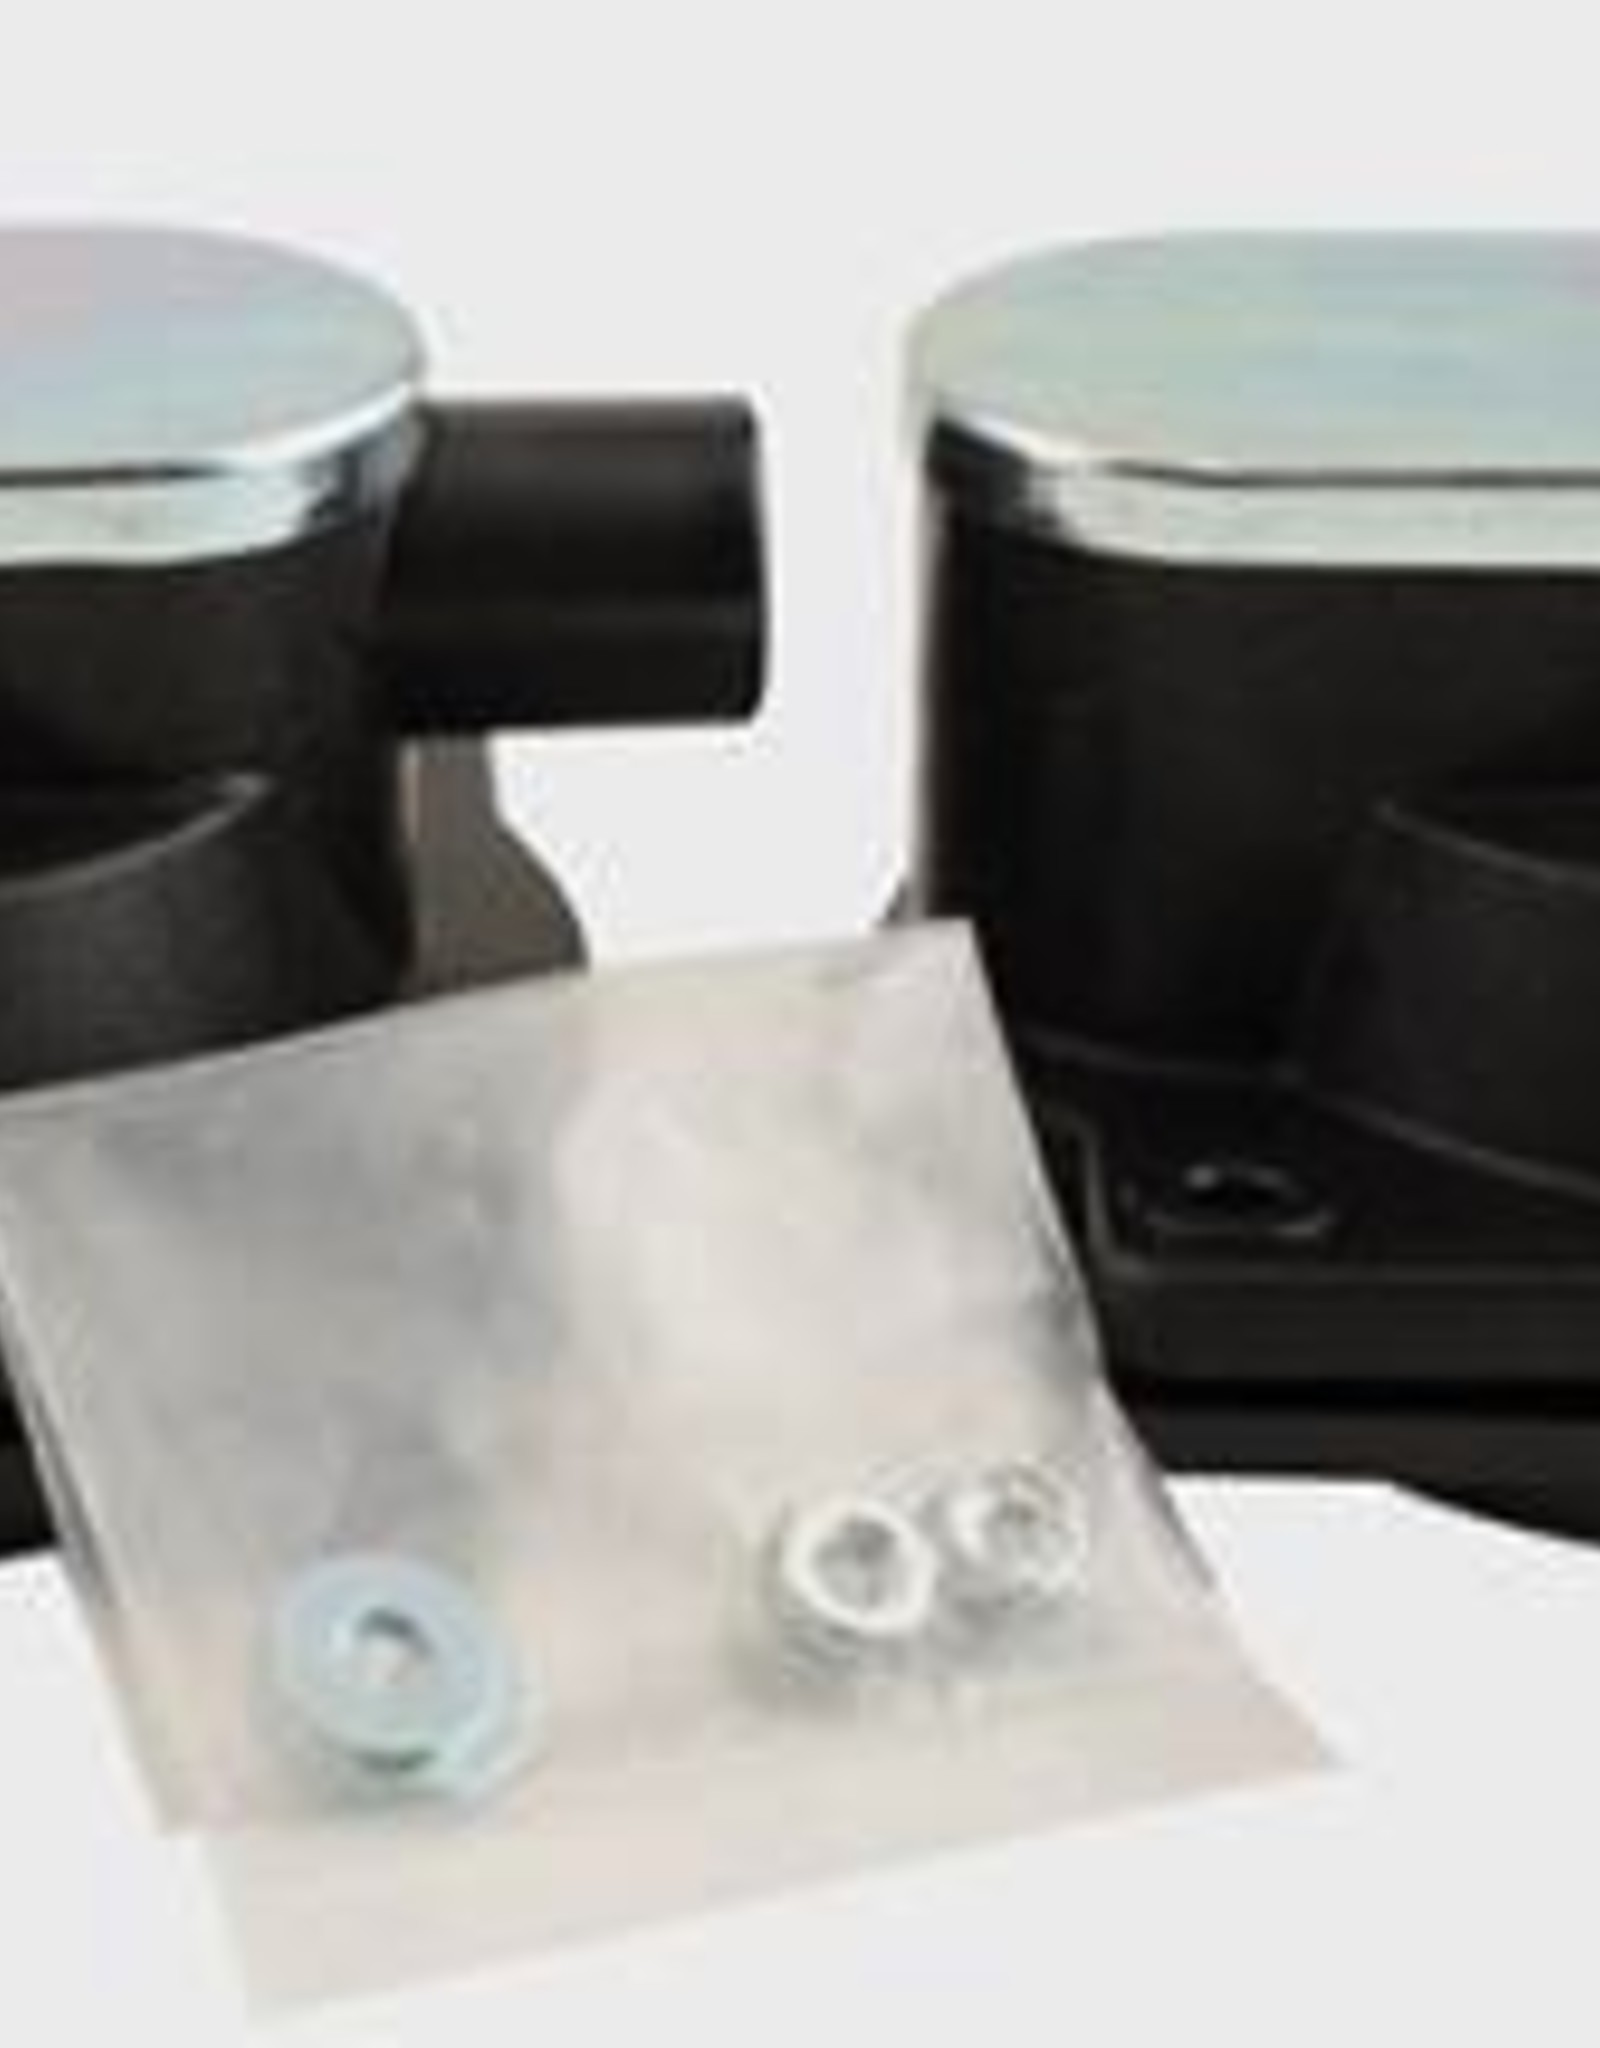 Air Force  Pro Air Force Pro Replacement Diaphragm Kit Air Force Pro 60 and 80